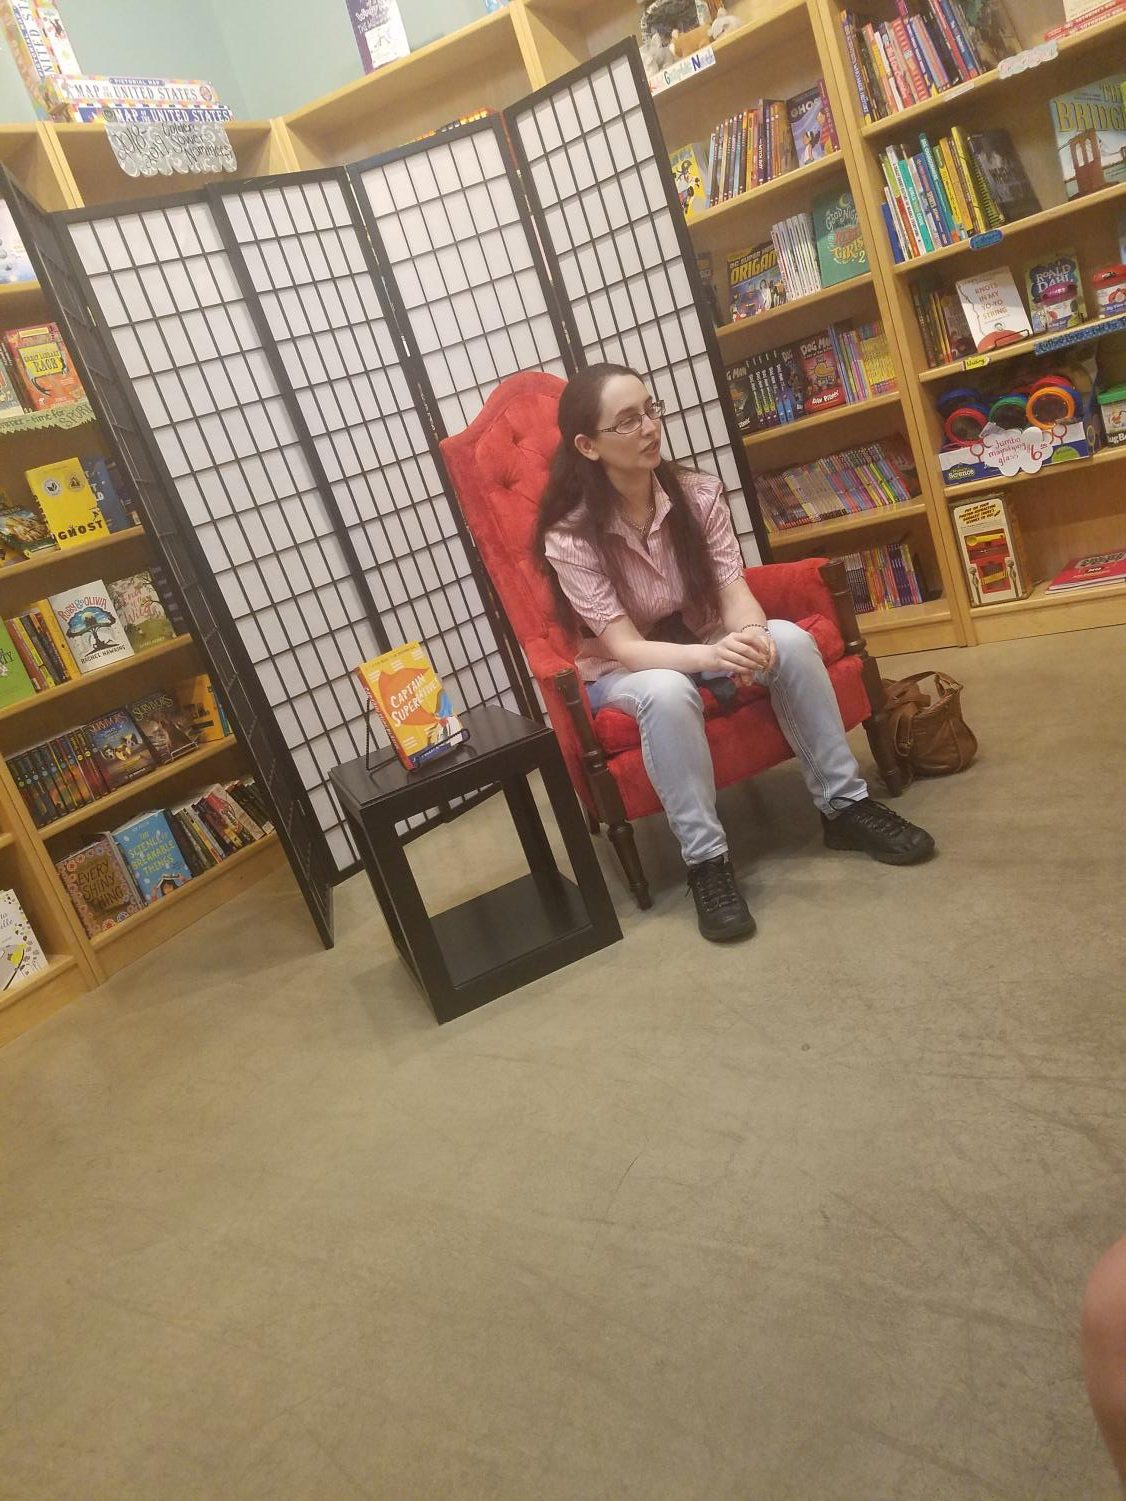 J. S. Puller talks to her readers while sitting on her throne at Indigo Bridge Books on Friday, May 11th.